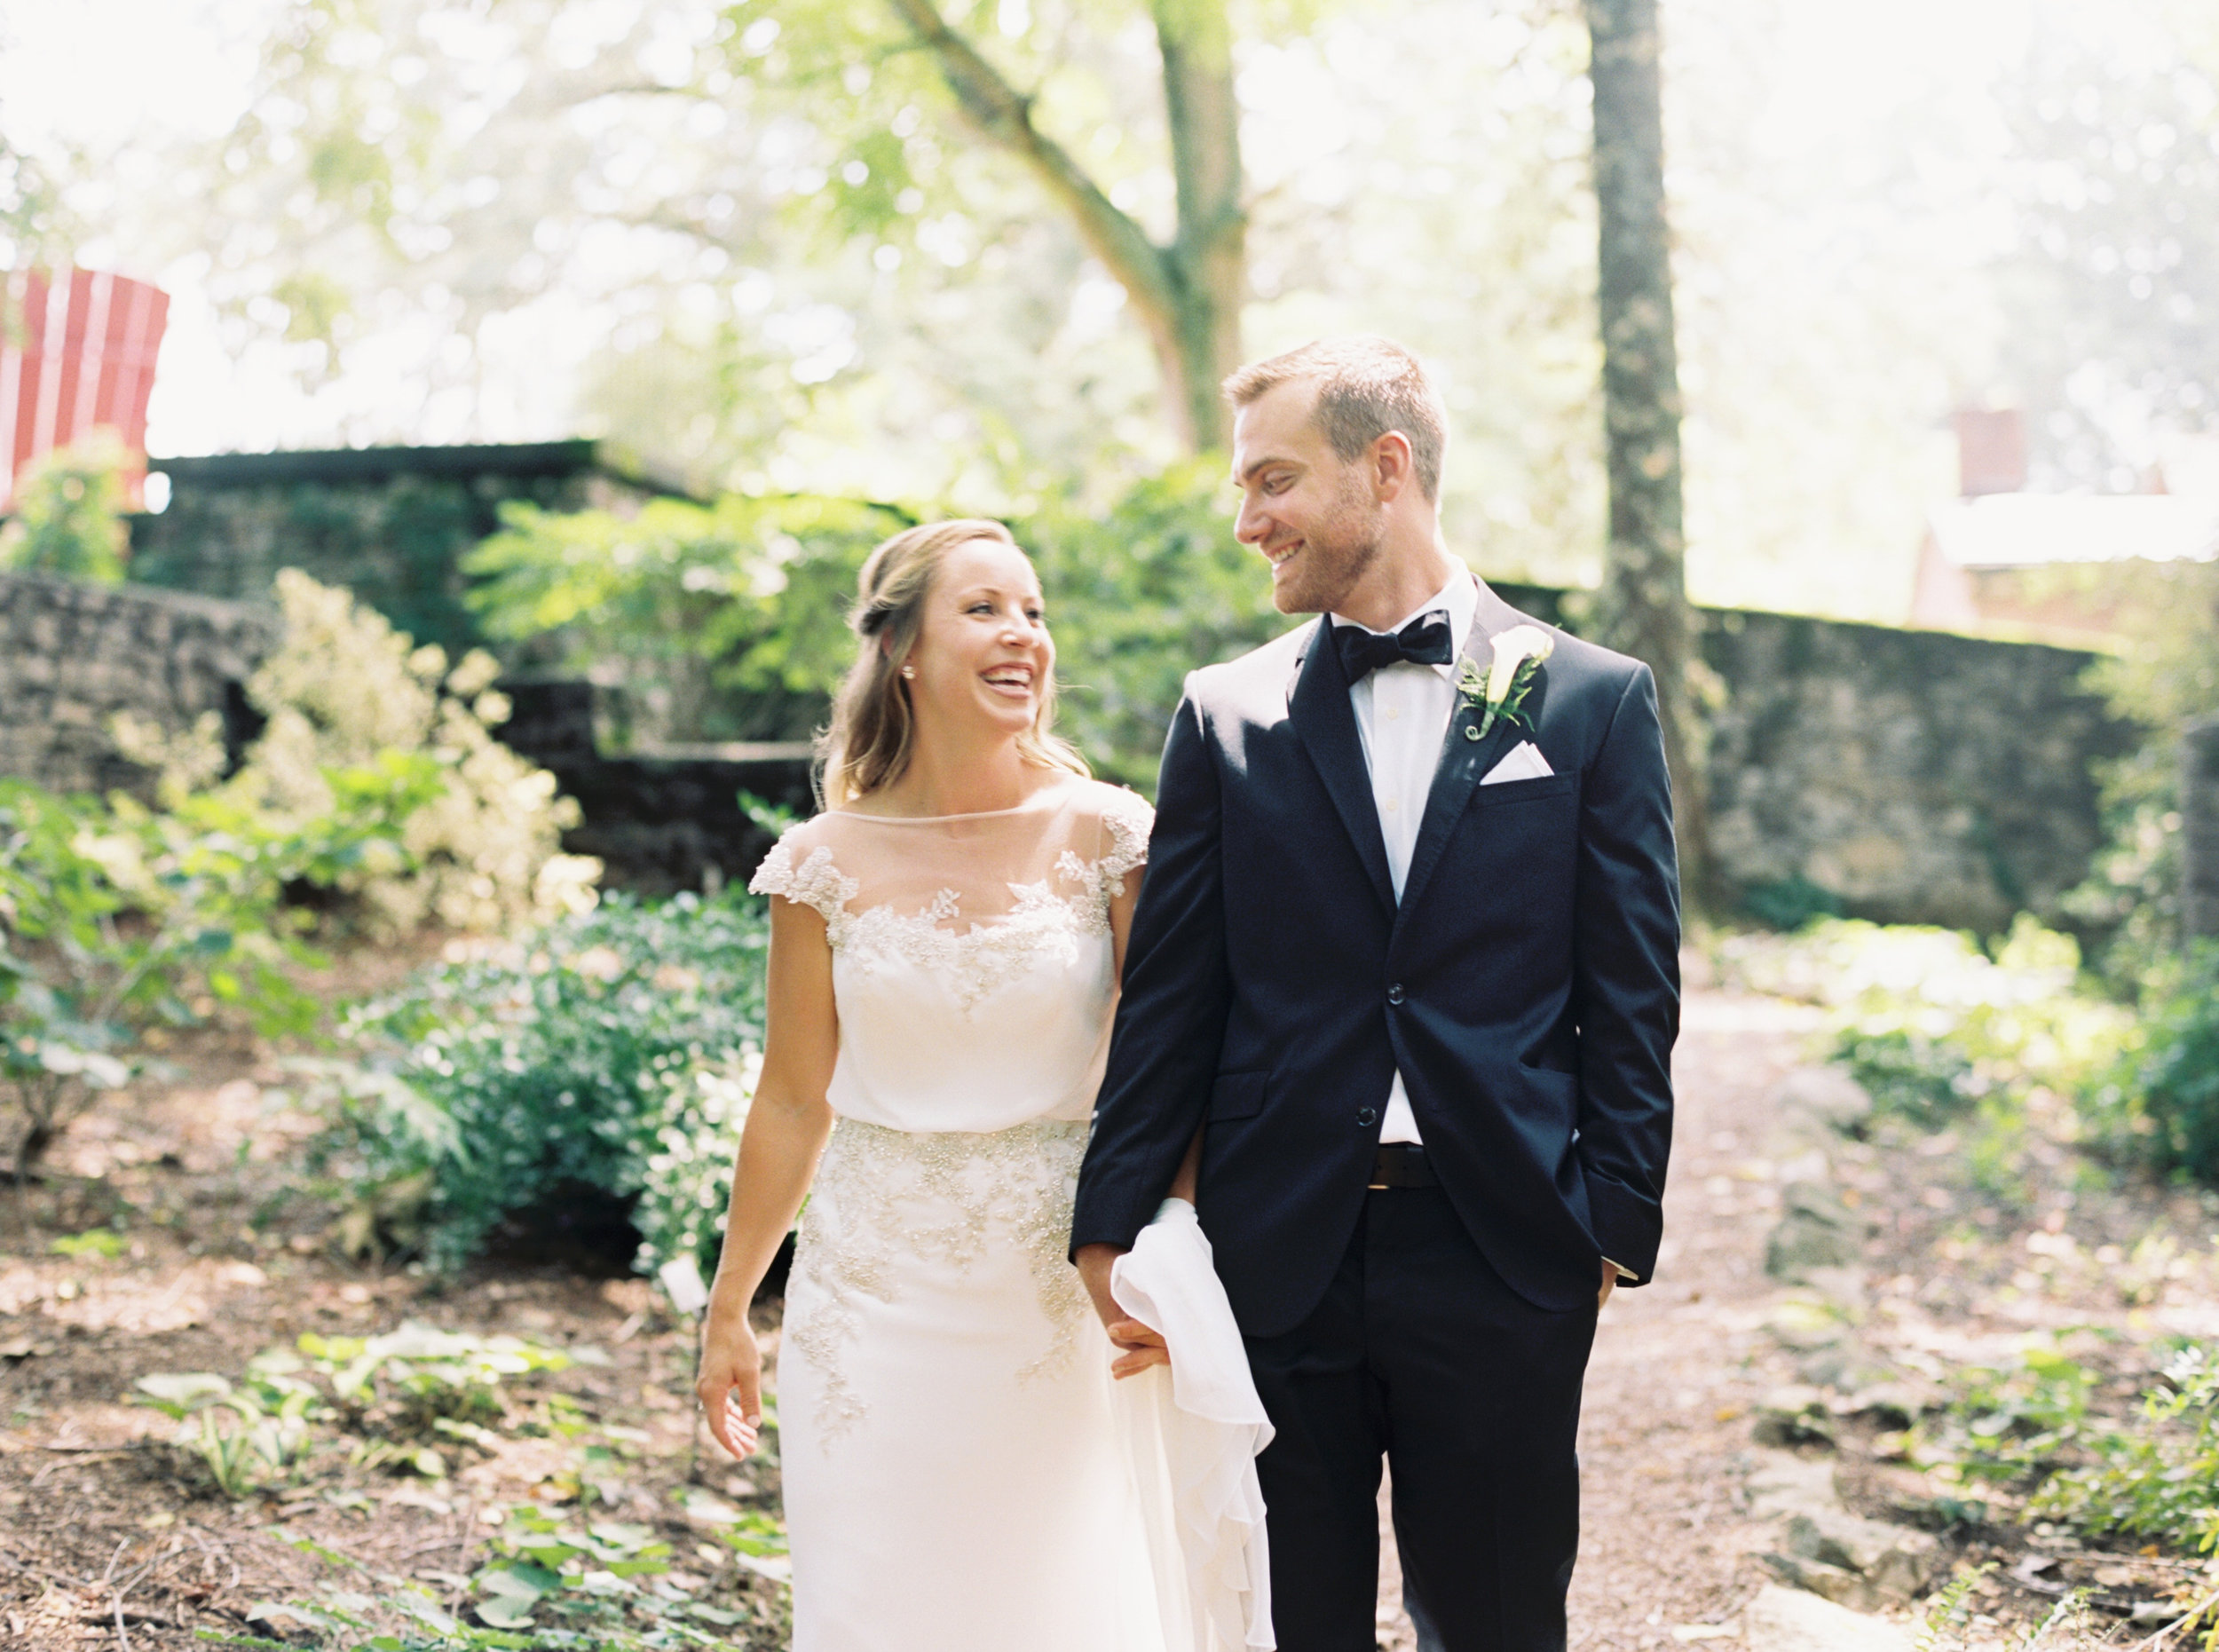 Katie_Matt_Wedding_Knoxville_Botanical_Garden_Abigail_Malone_photography-107.jpg